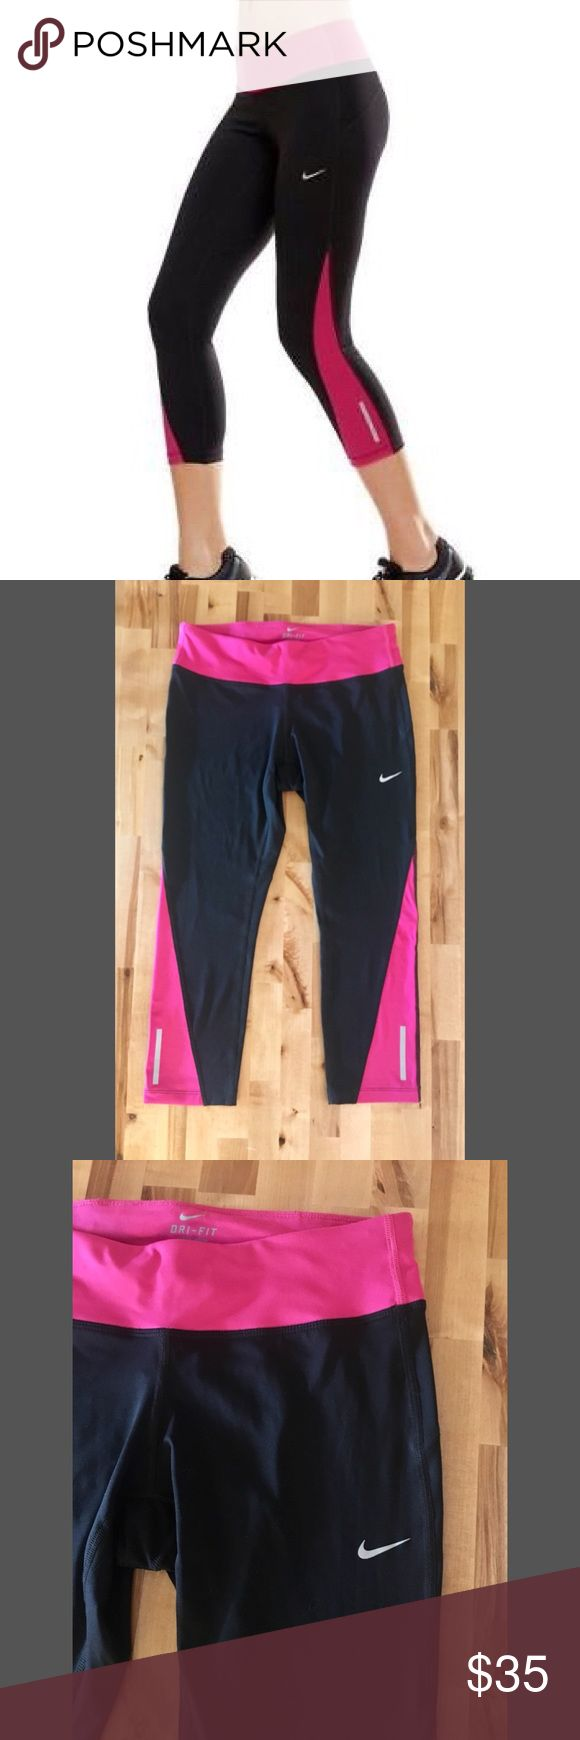 NWT Nike Racer Crop 2.0 Running Tights Black & Pink crop workout pants Medium Racer crop 2.0 Dri-Fit New with tags Nike Pants Leggings